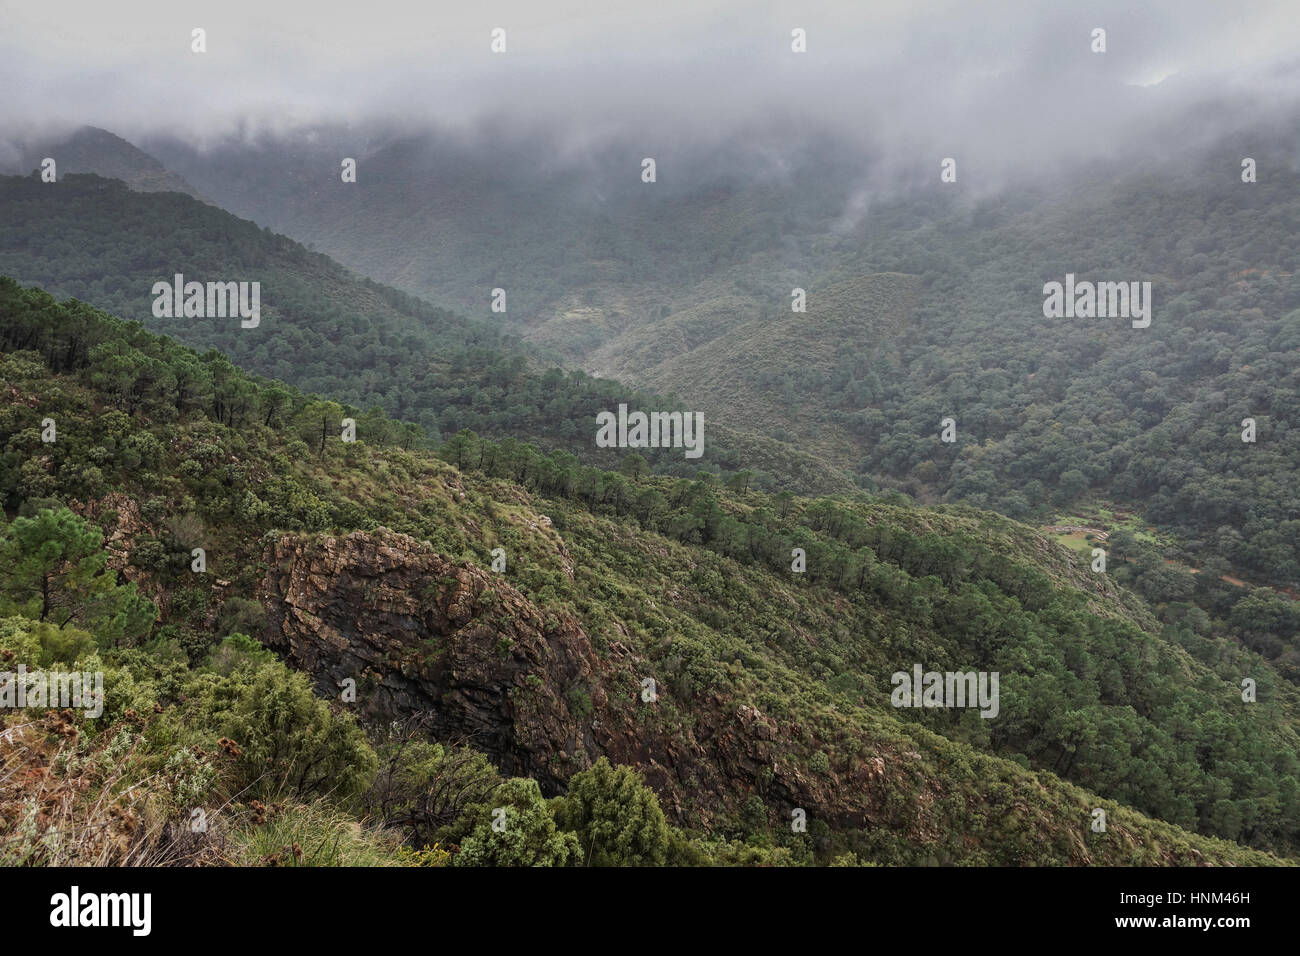 Scenic Pine forest in mountains with low hanging clouds, Sierra Alpujata, Coin, Spain. - Stock Image